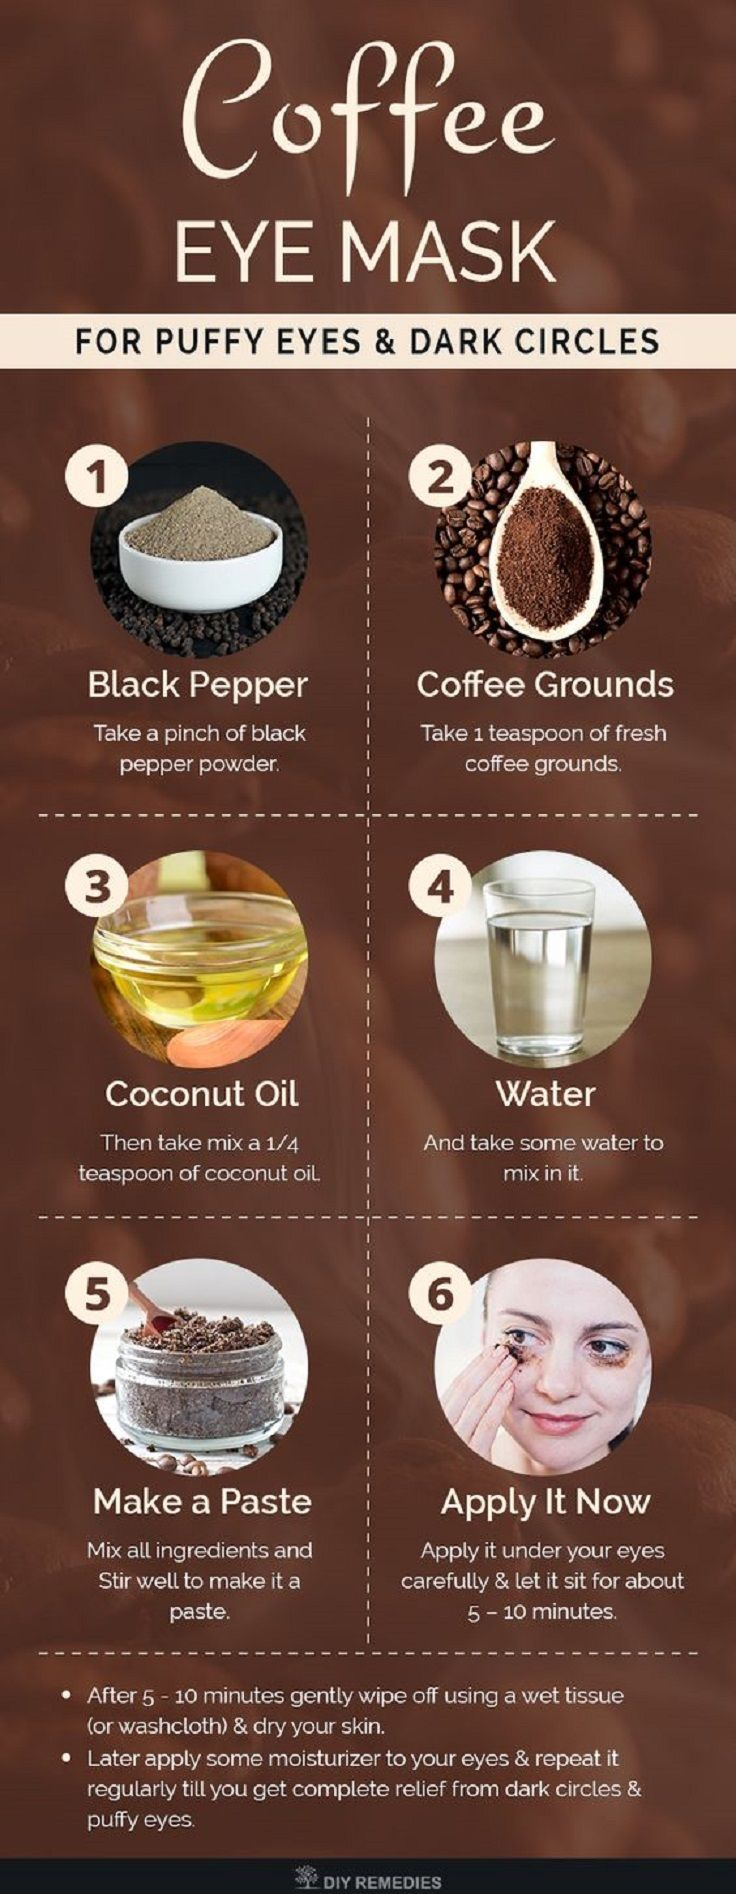 DIY Coffee Eye Mask for Puffy Eyes and Dark Circles - 16 Proven Skin Care Tips and DIYs to Incorporate in Your Spring Beauty Routine